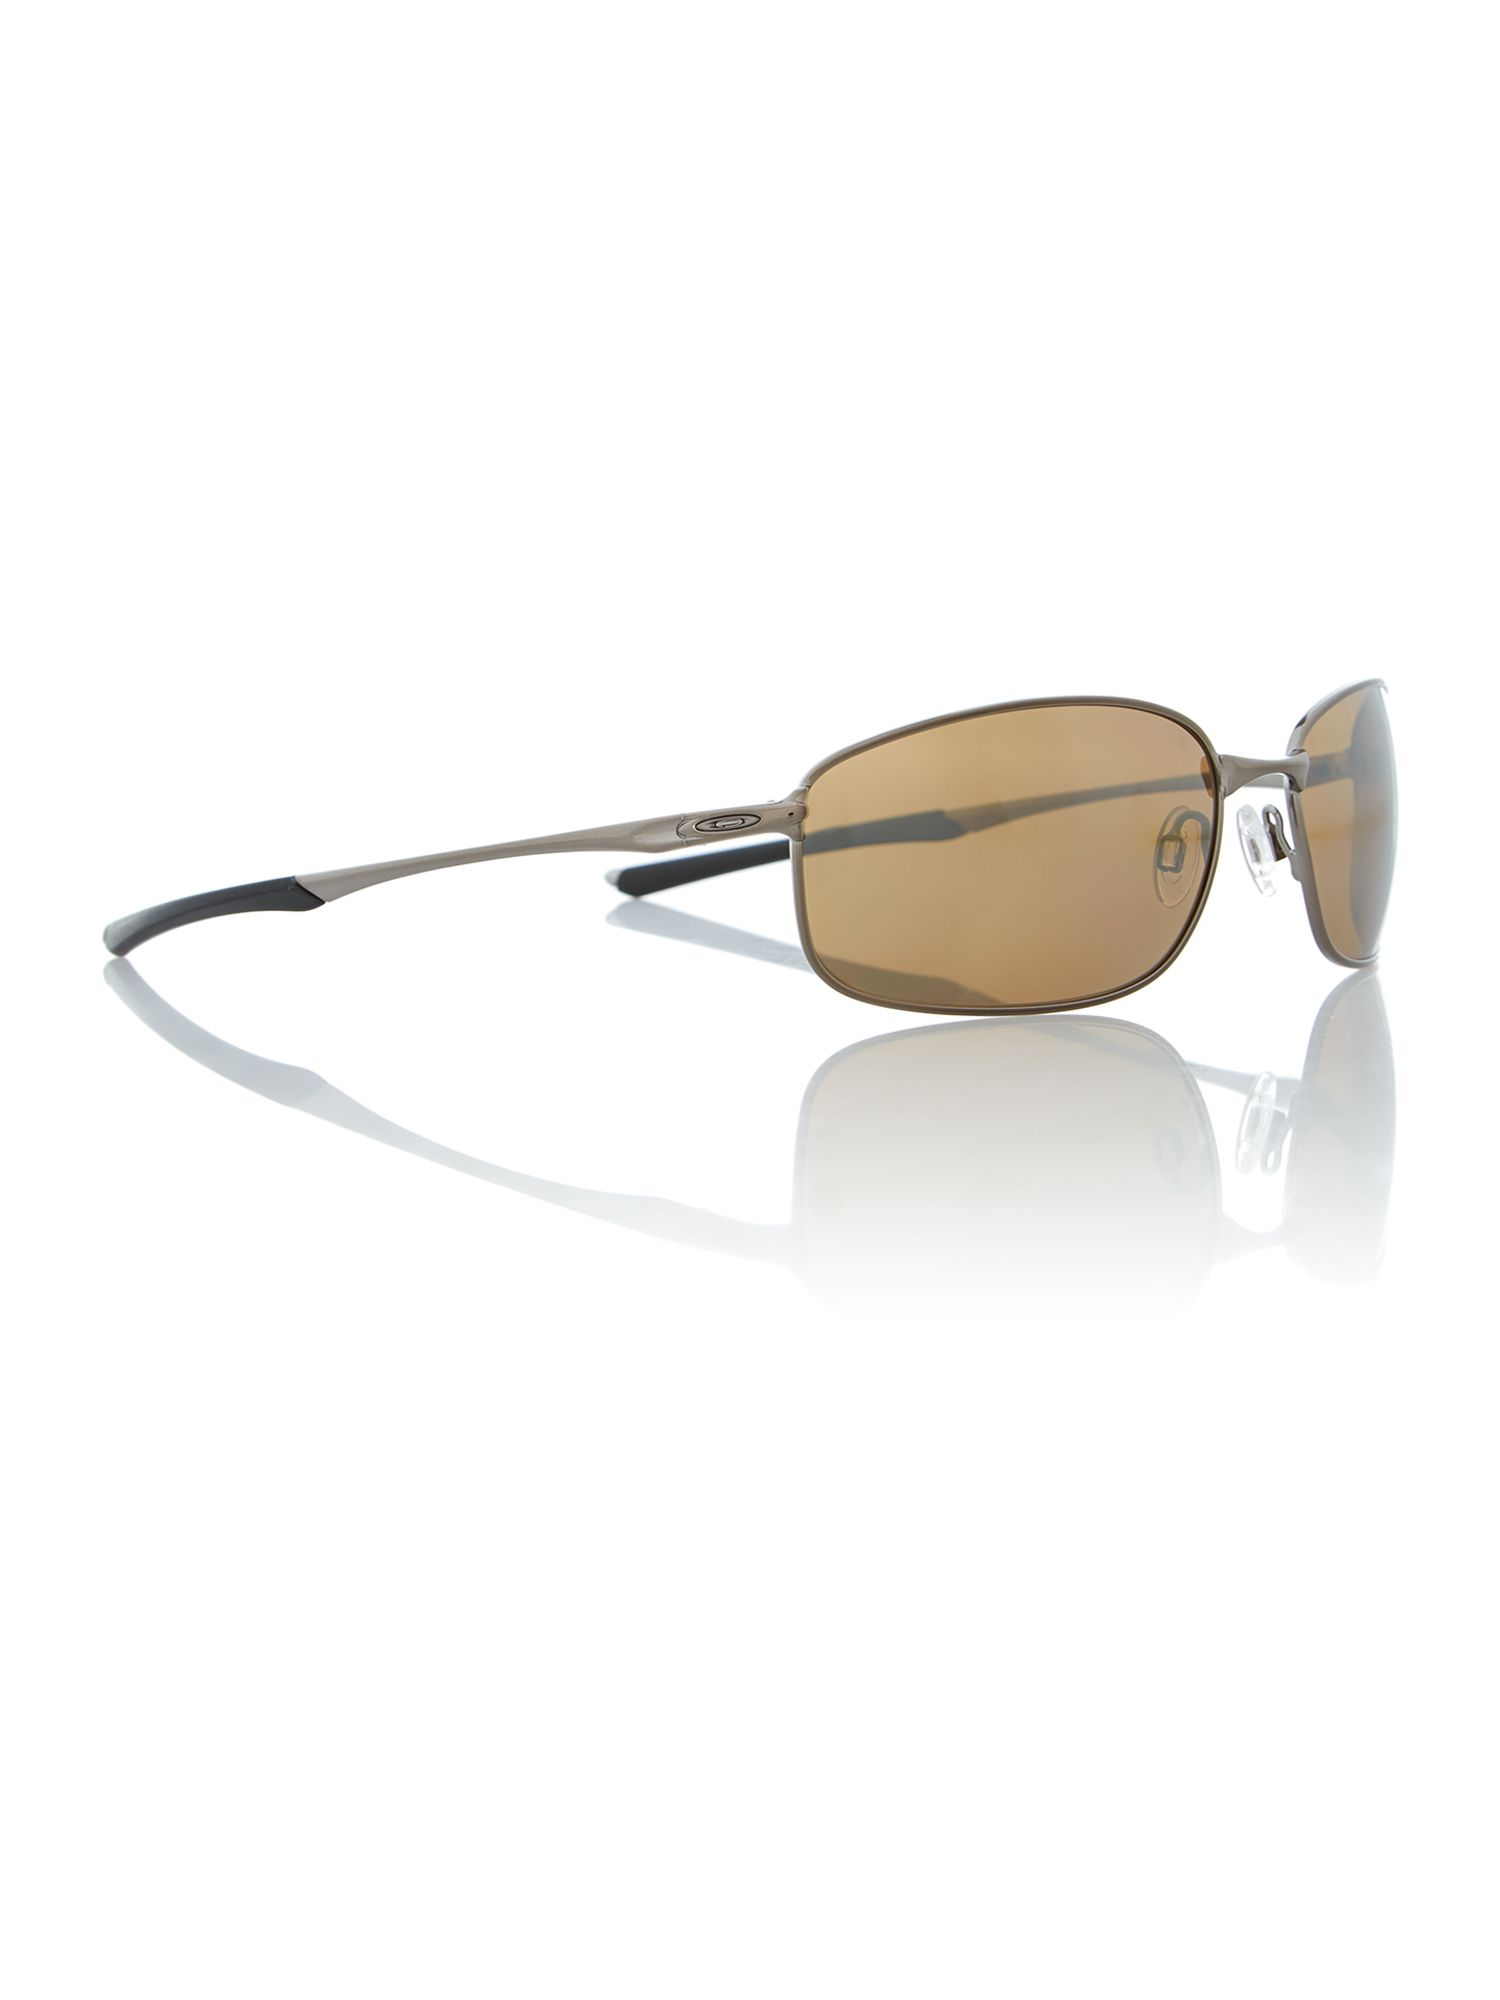 Taper tungsten sunglasses